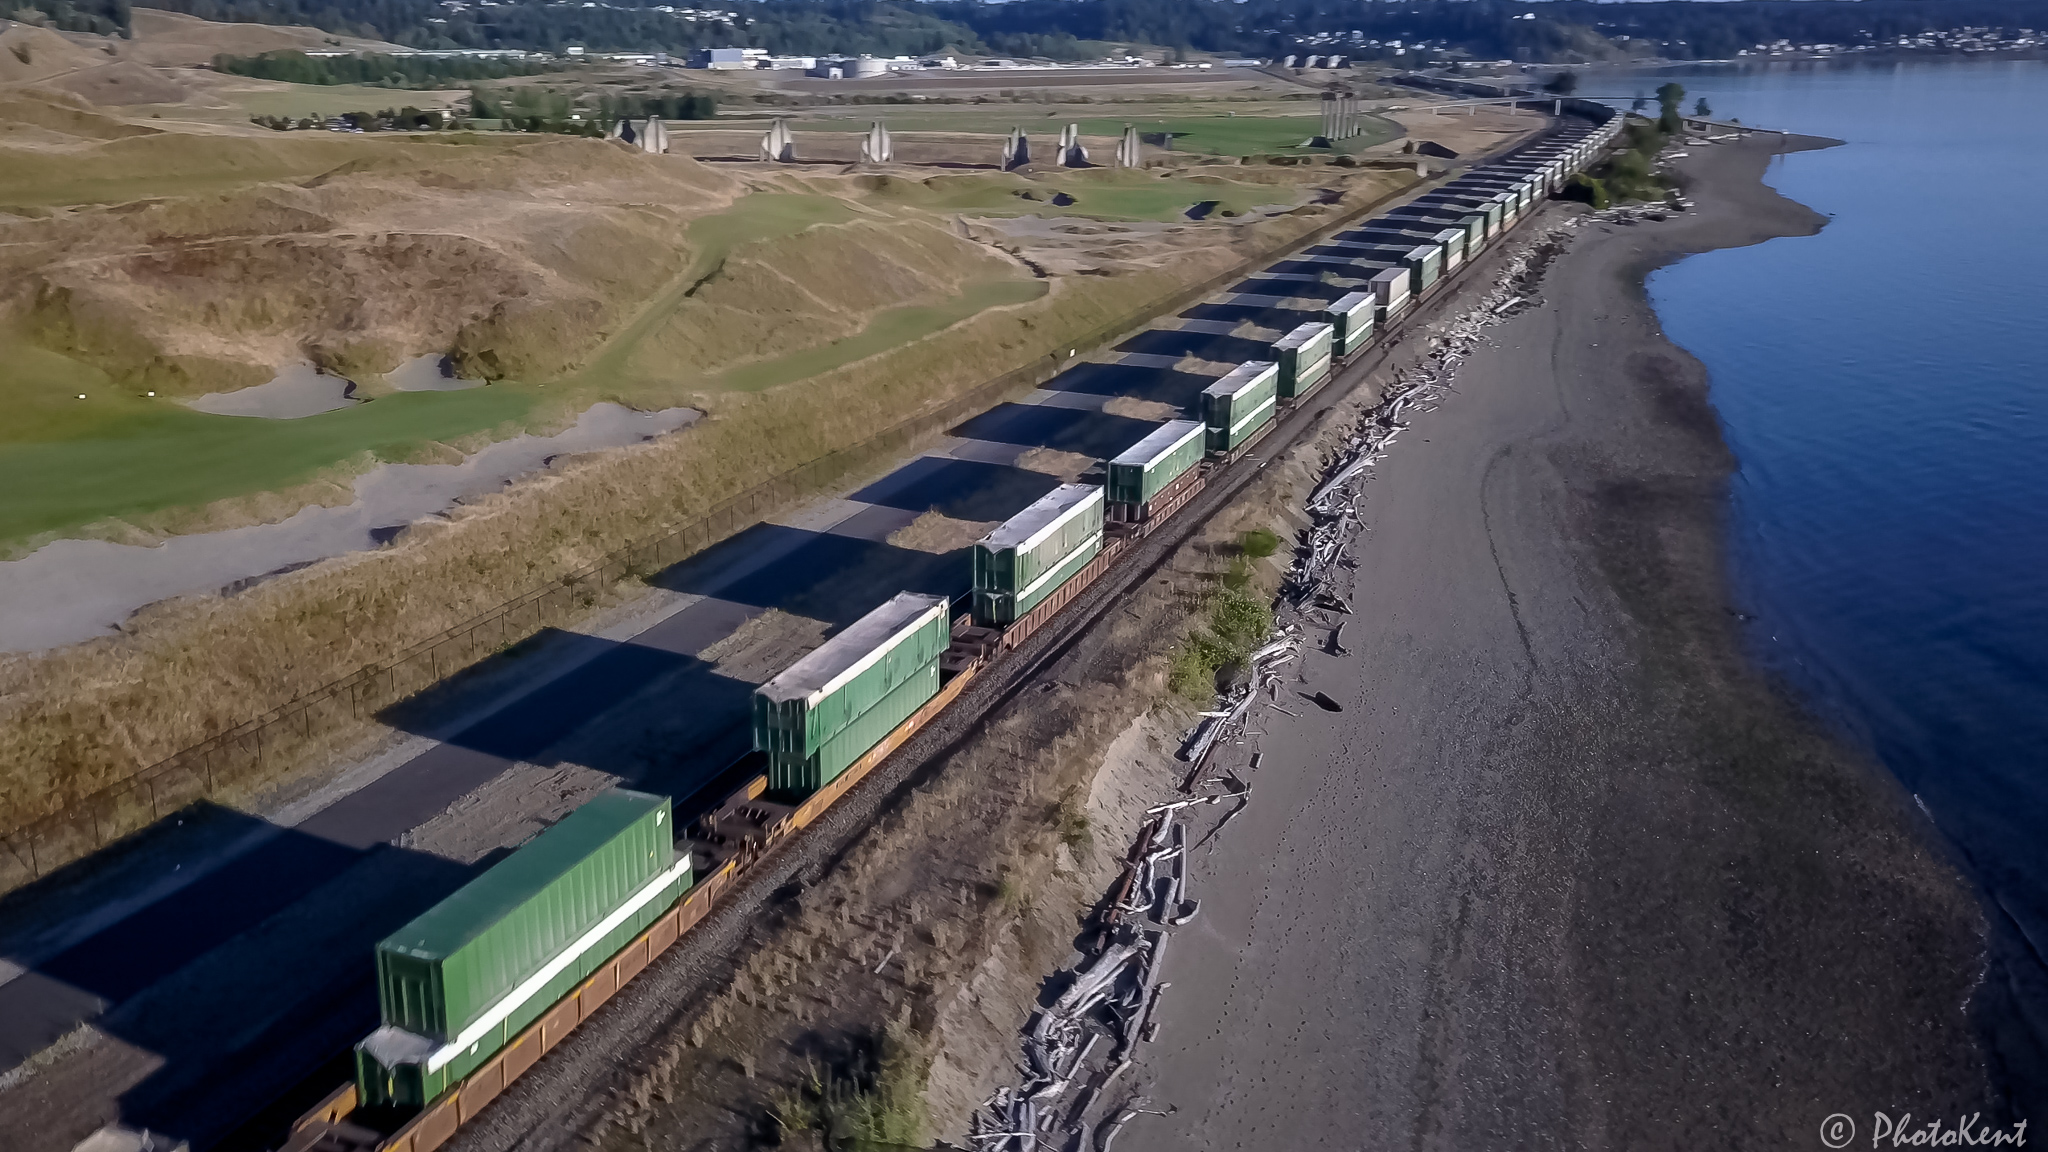 Southbound container train